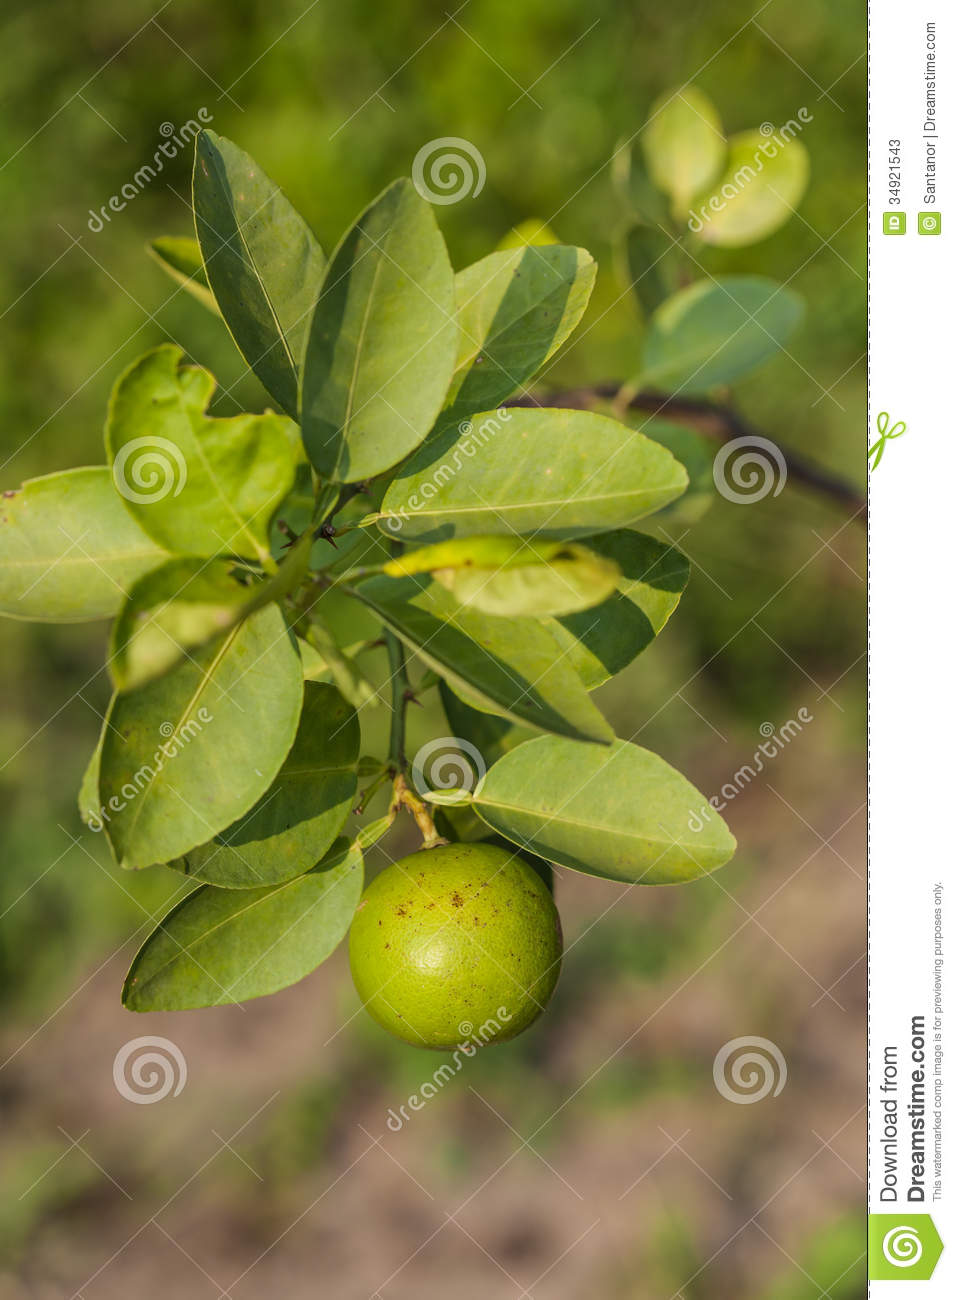 Lime on the tree